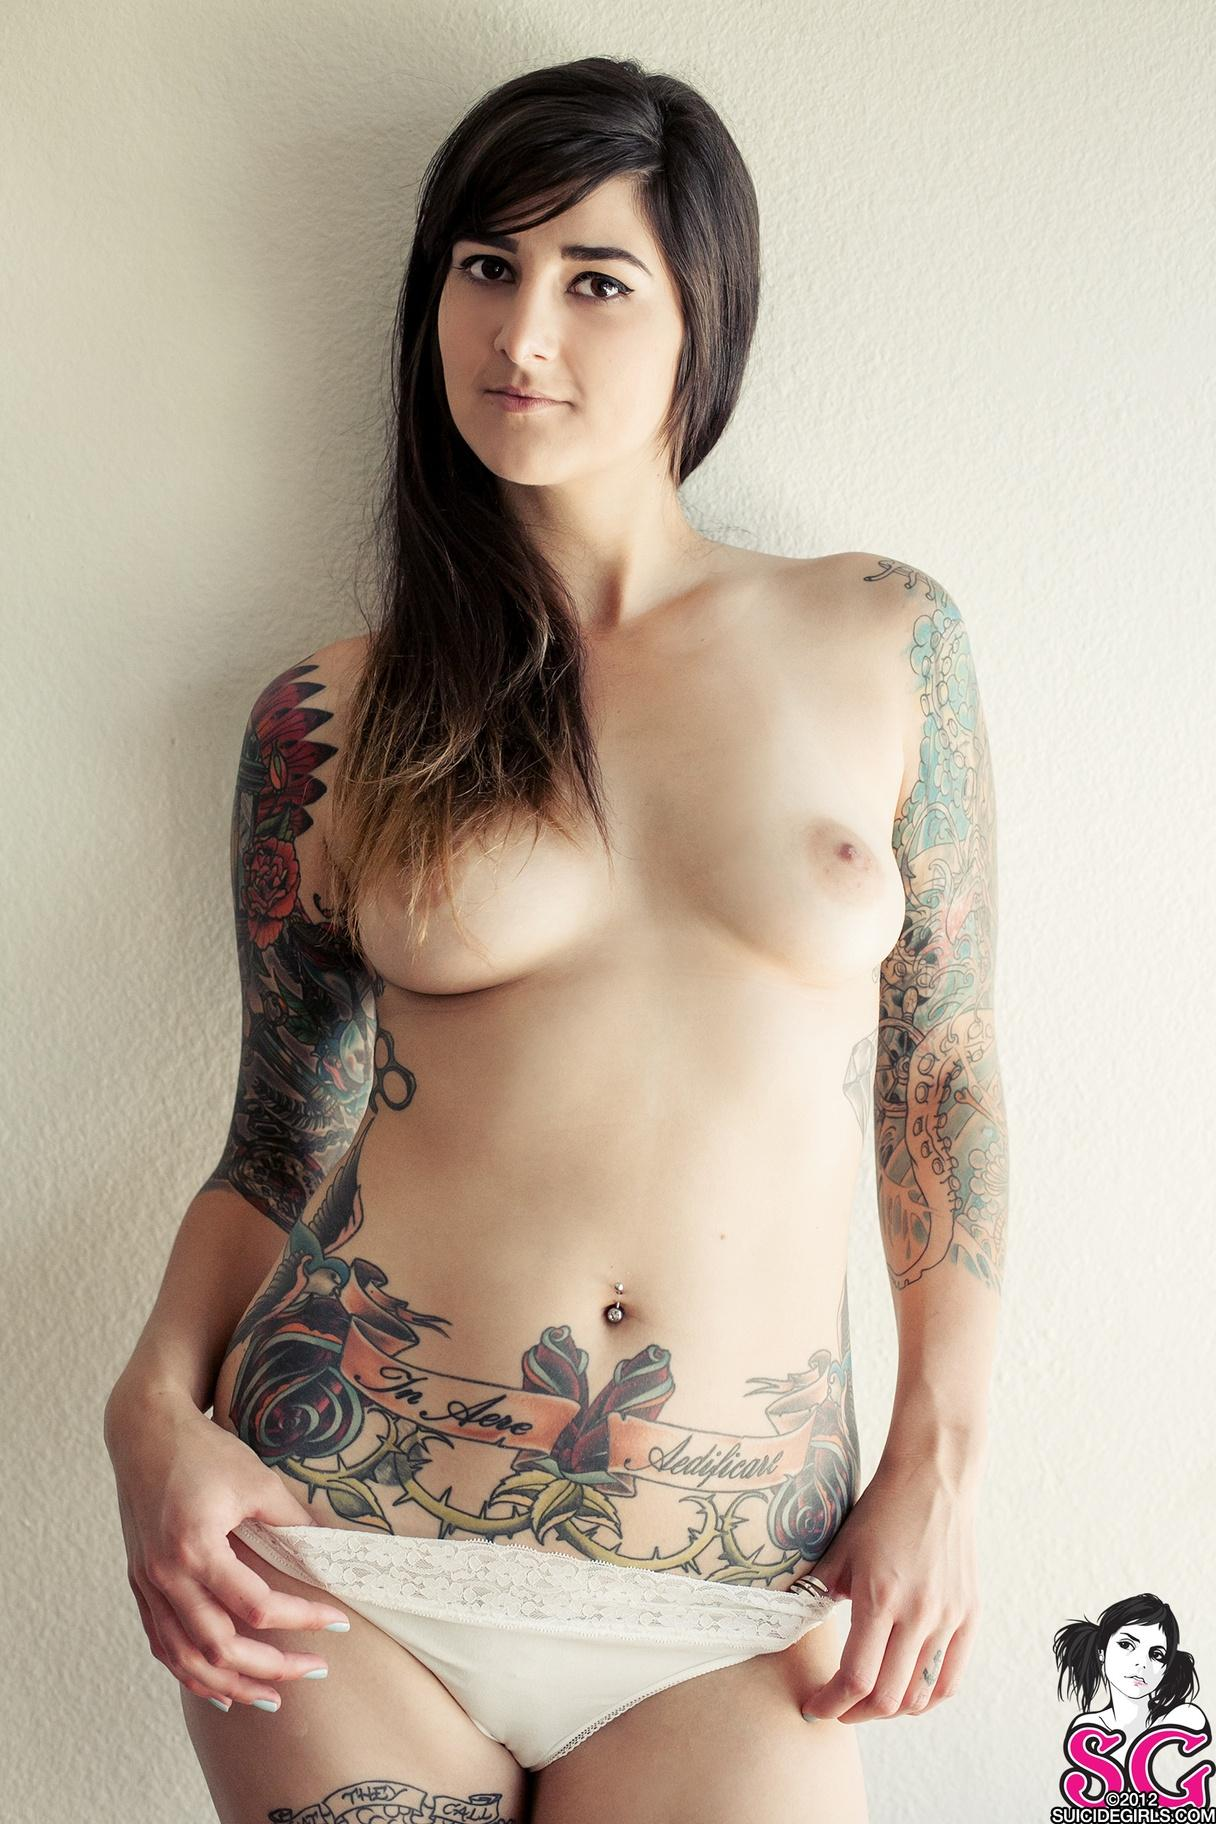 hot wet tattooed women nude